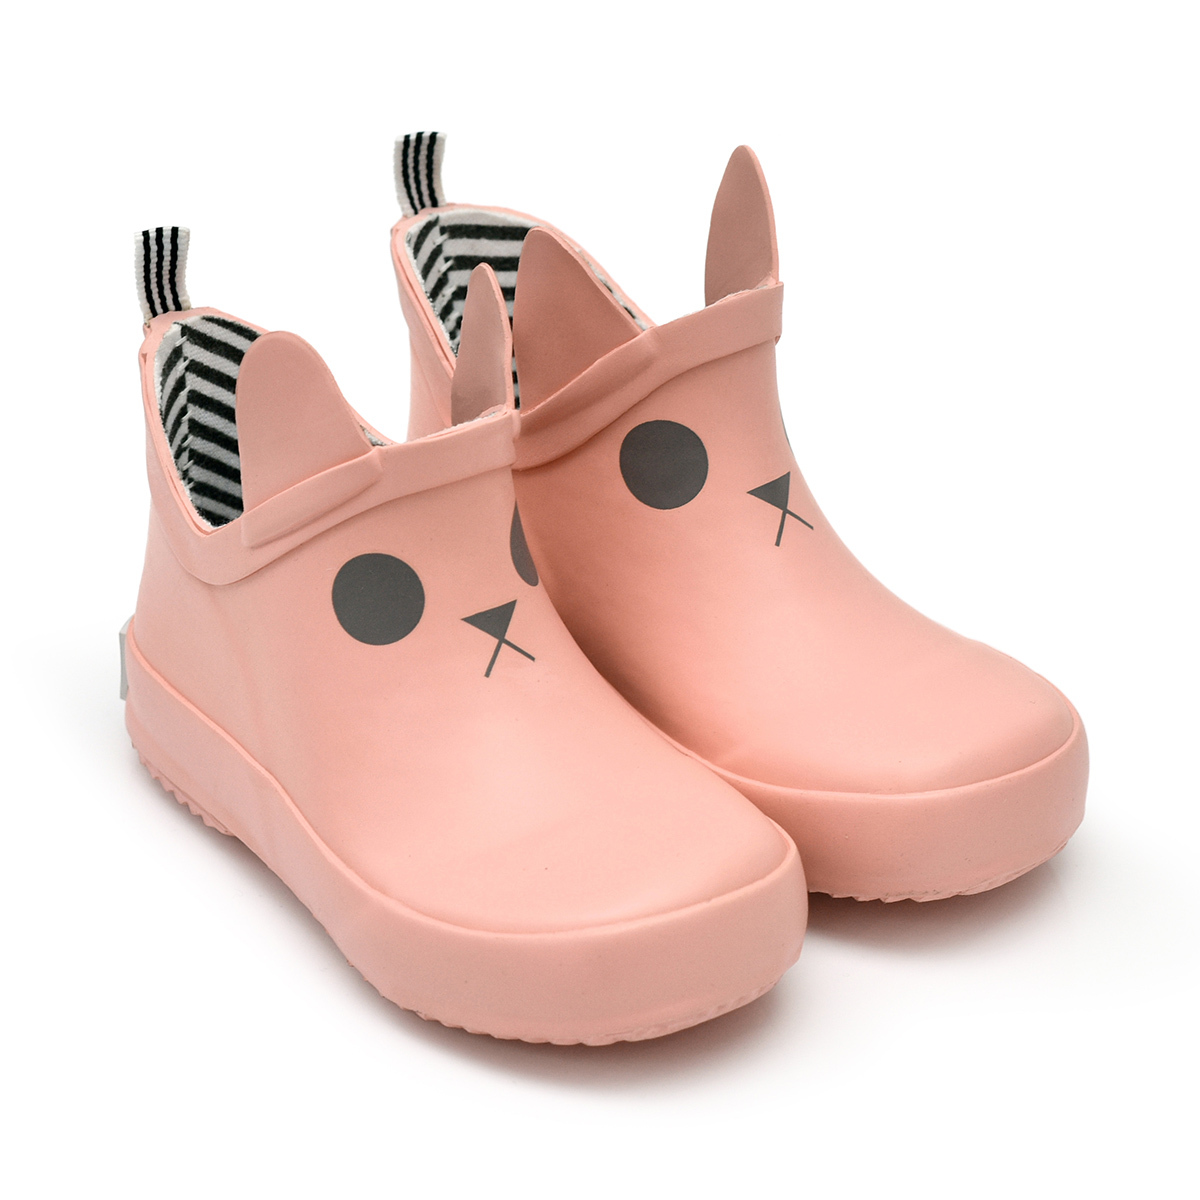 Chaussons & Chaussures Bottines Kerran Salmon Pink - 22 Bottines Kerran Salmon Pink - 22